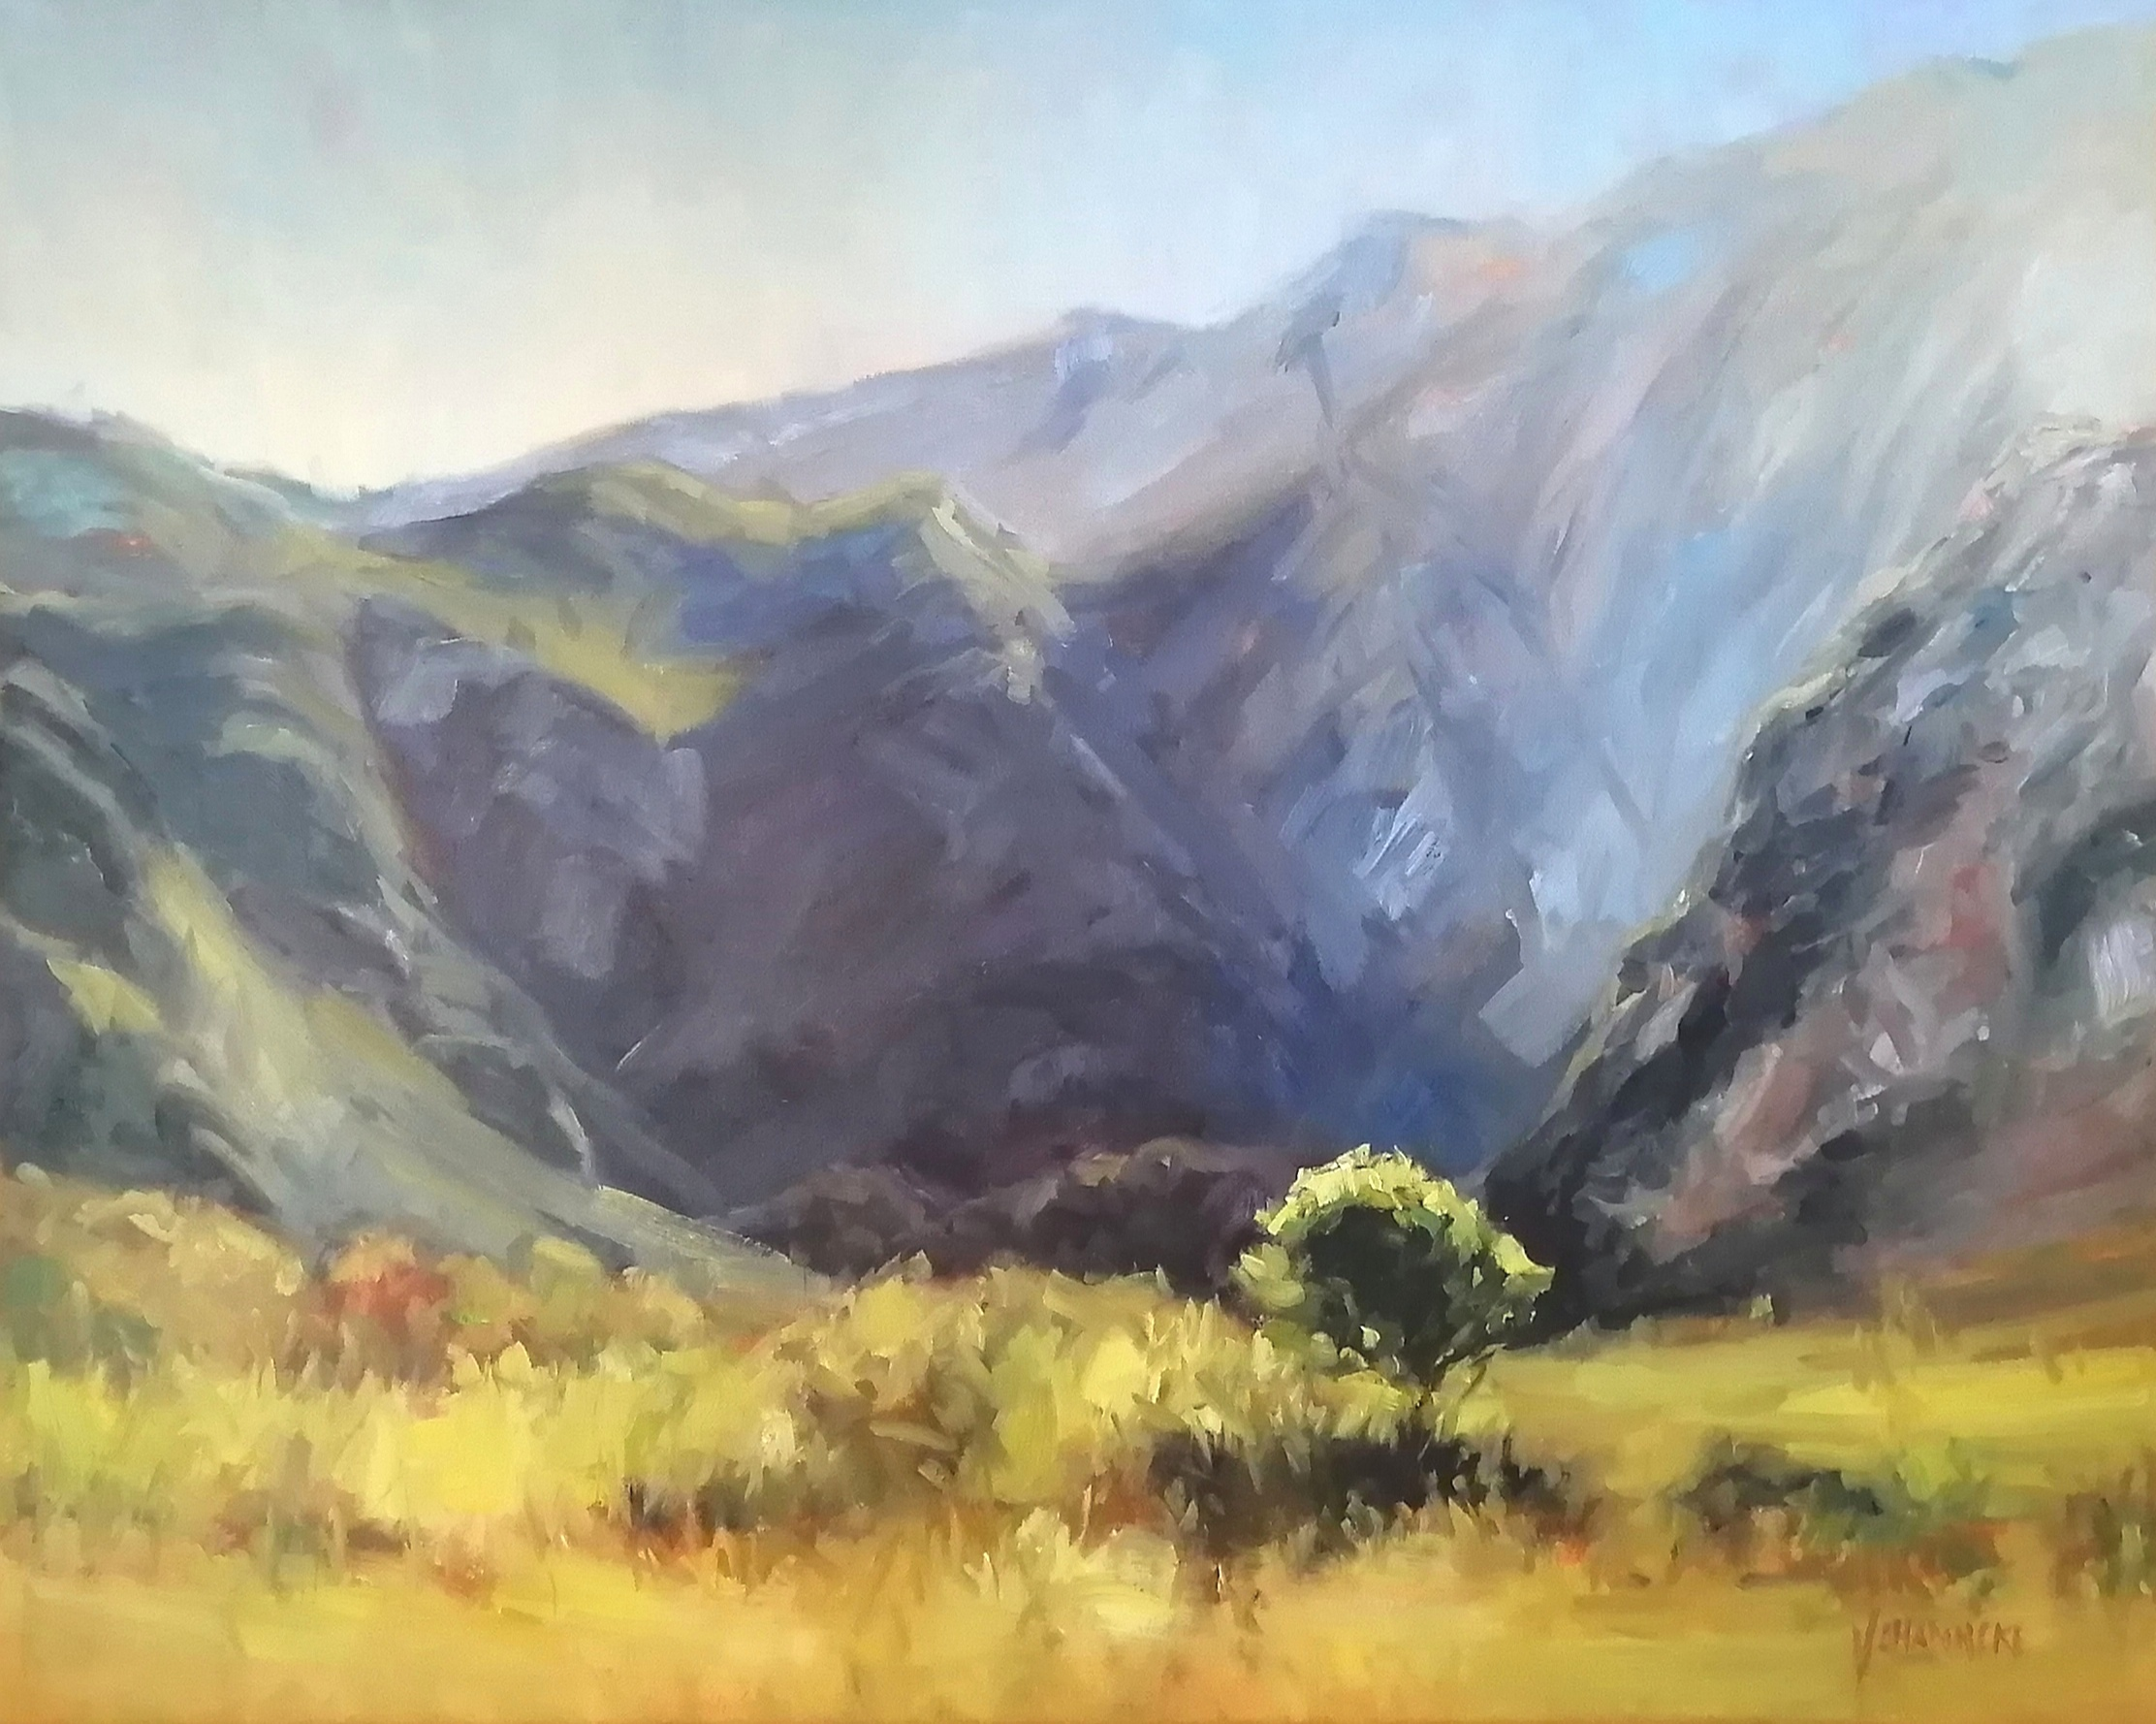 Landscape oil painter from South Africa.